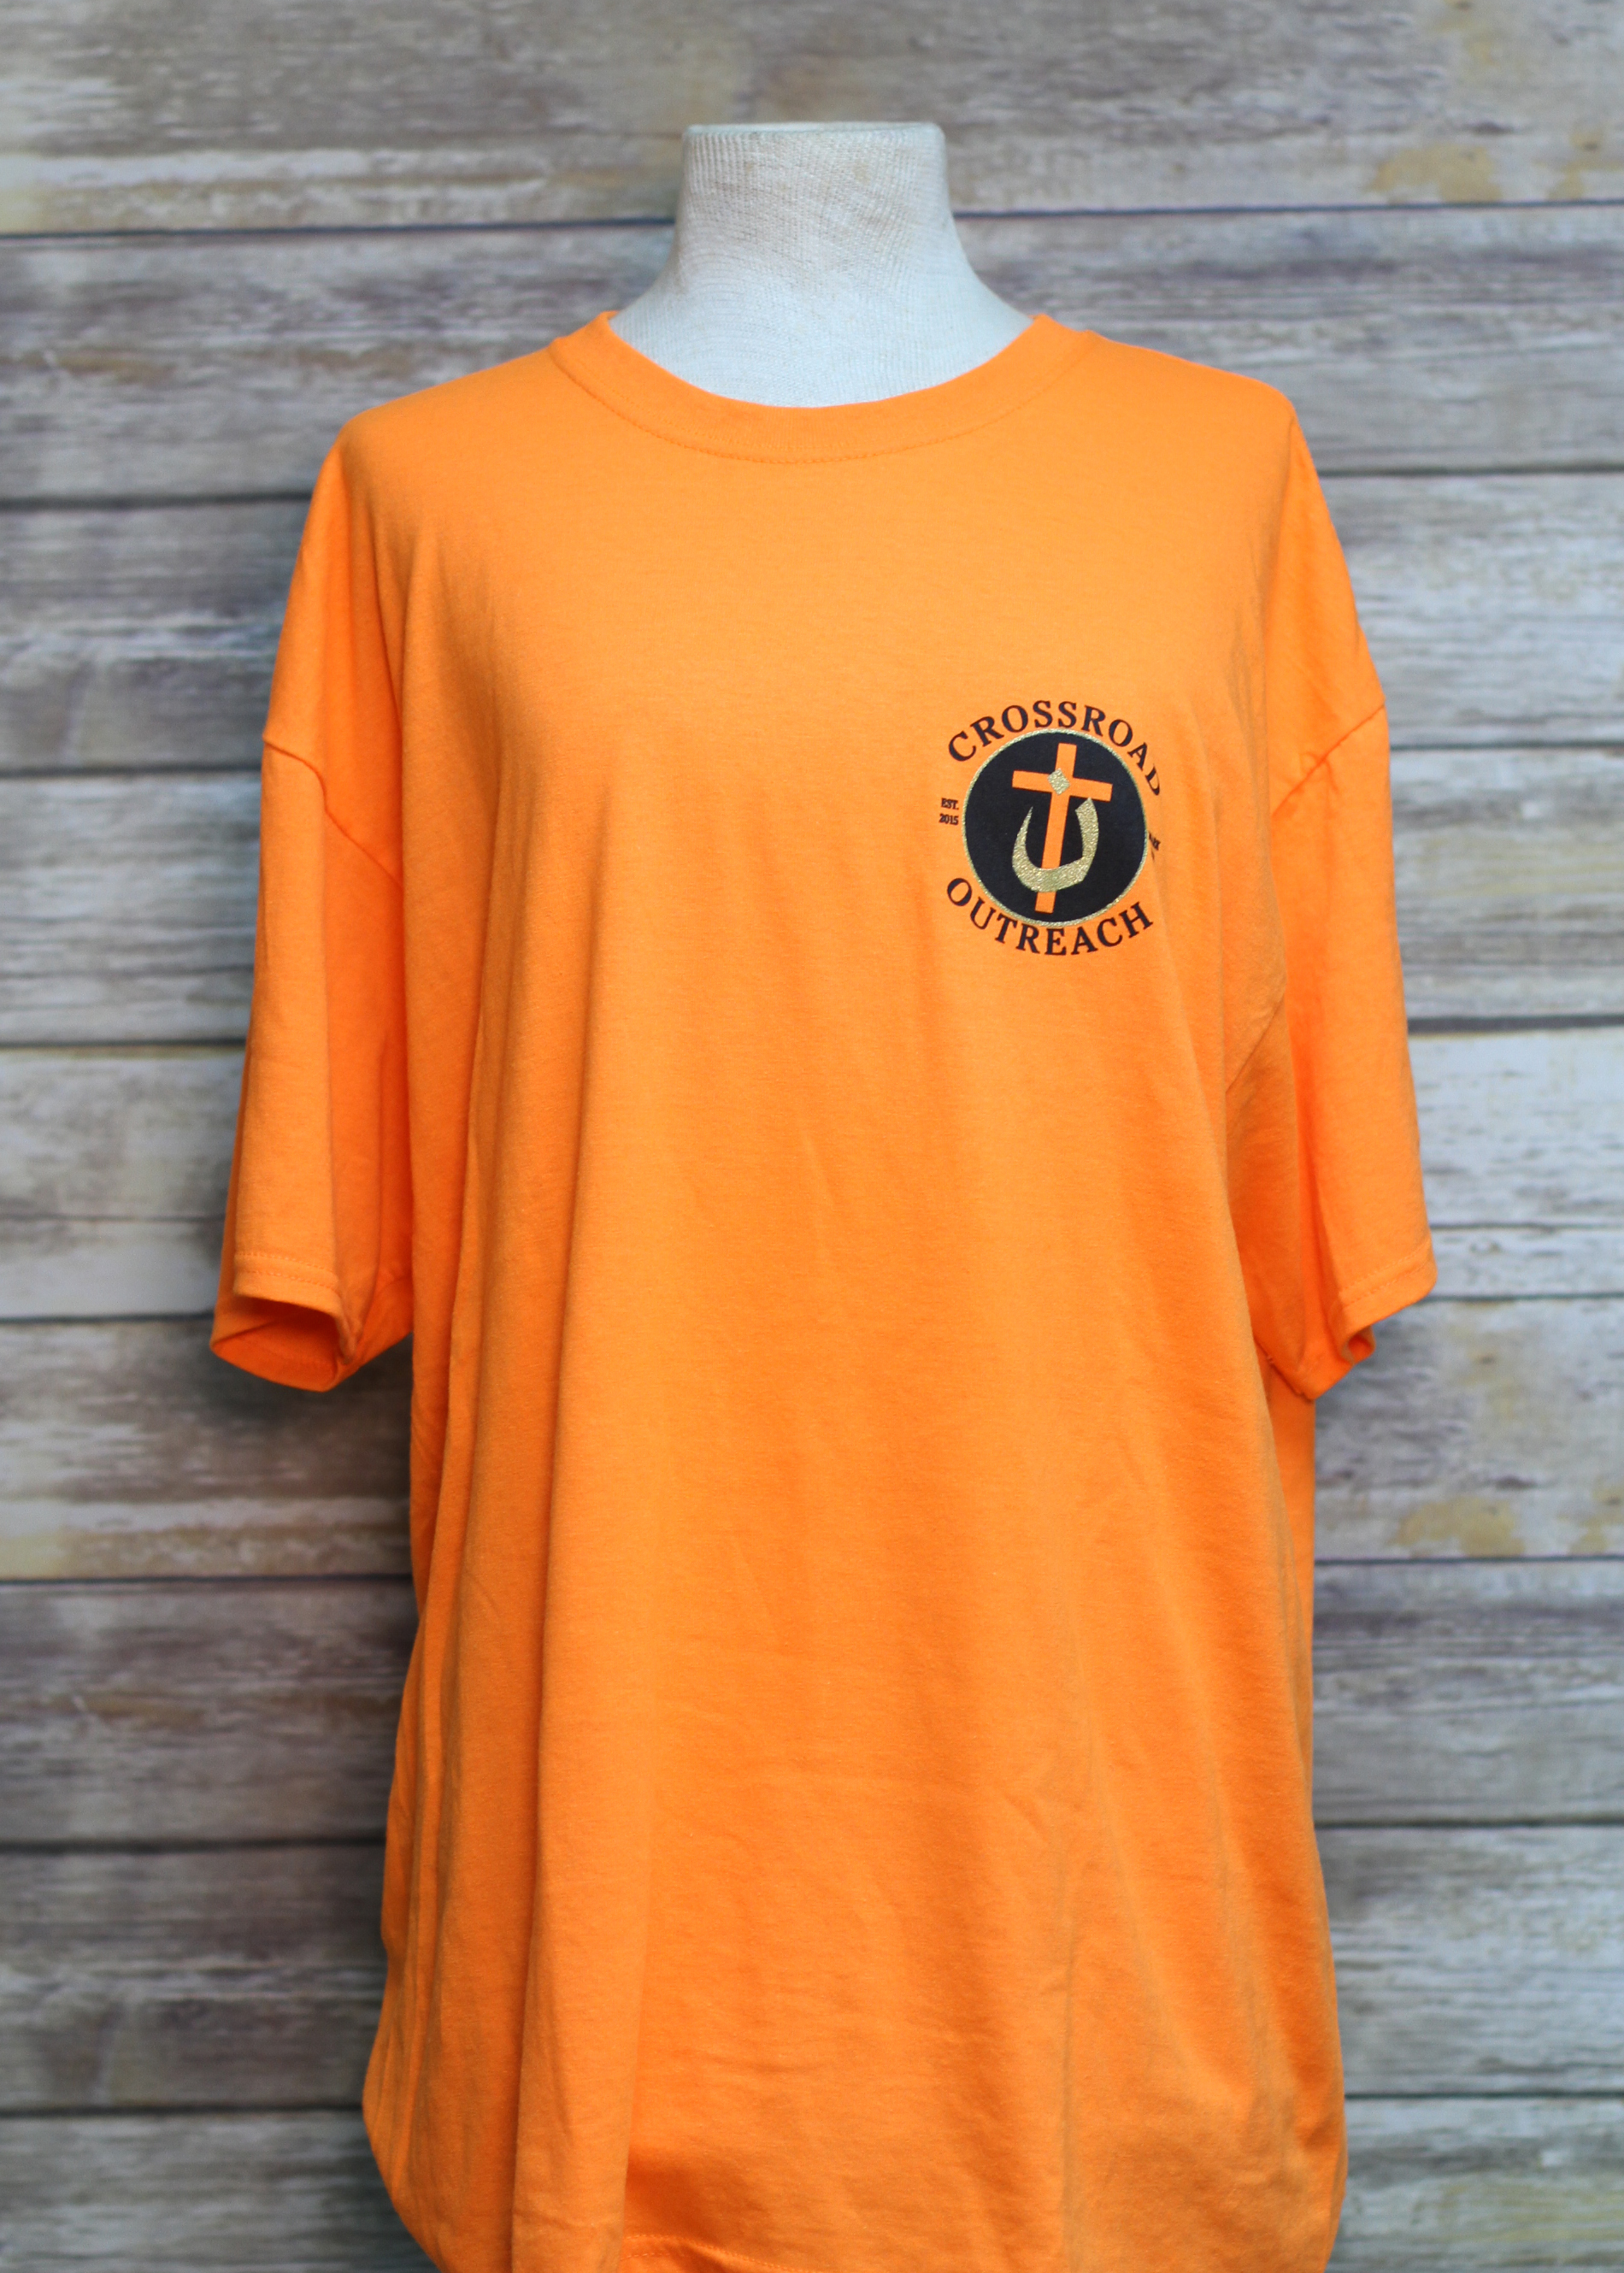 Crossroad Outreach Orange S/S Tee